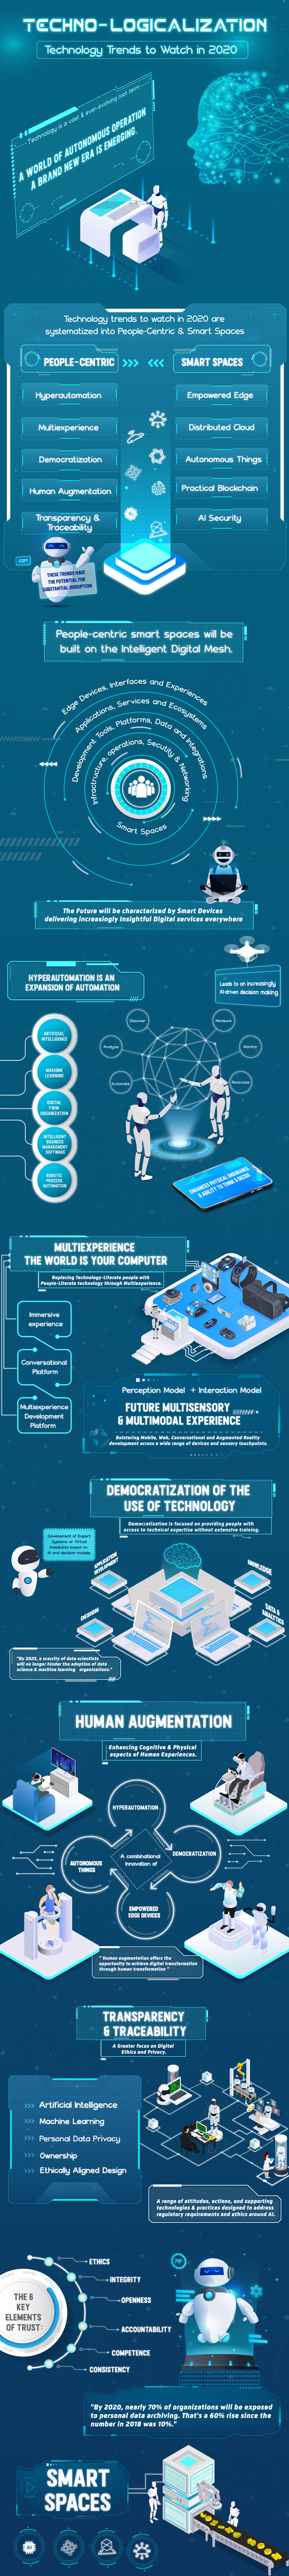 Technologicalization - Technology Trends to Watch in 2020